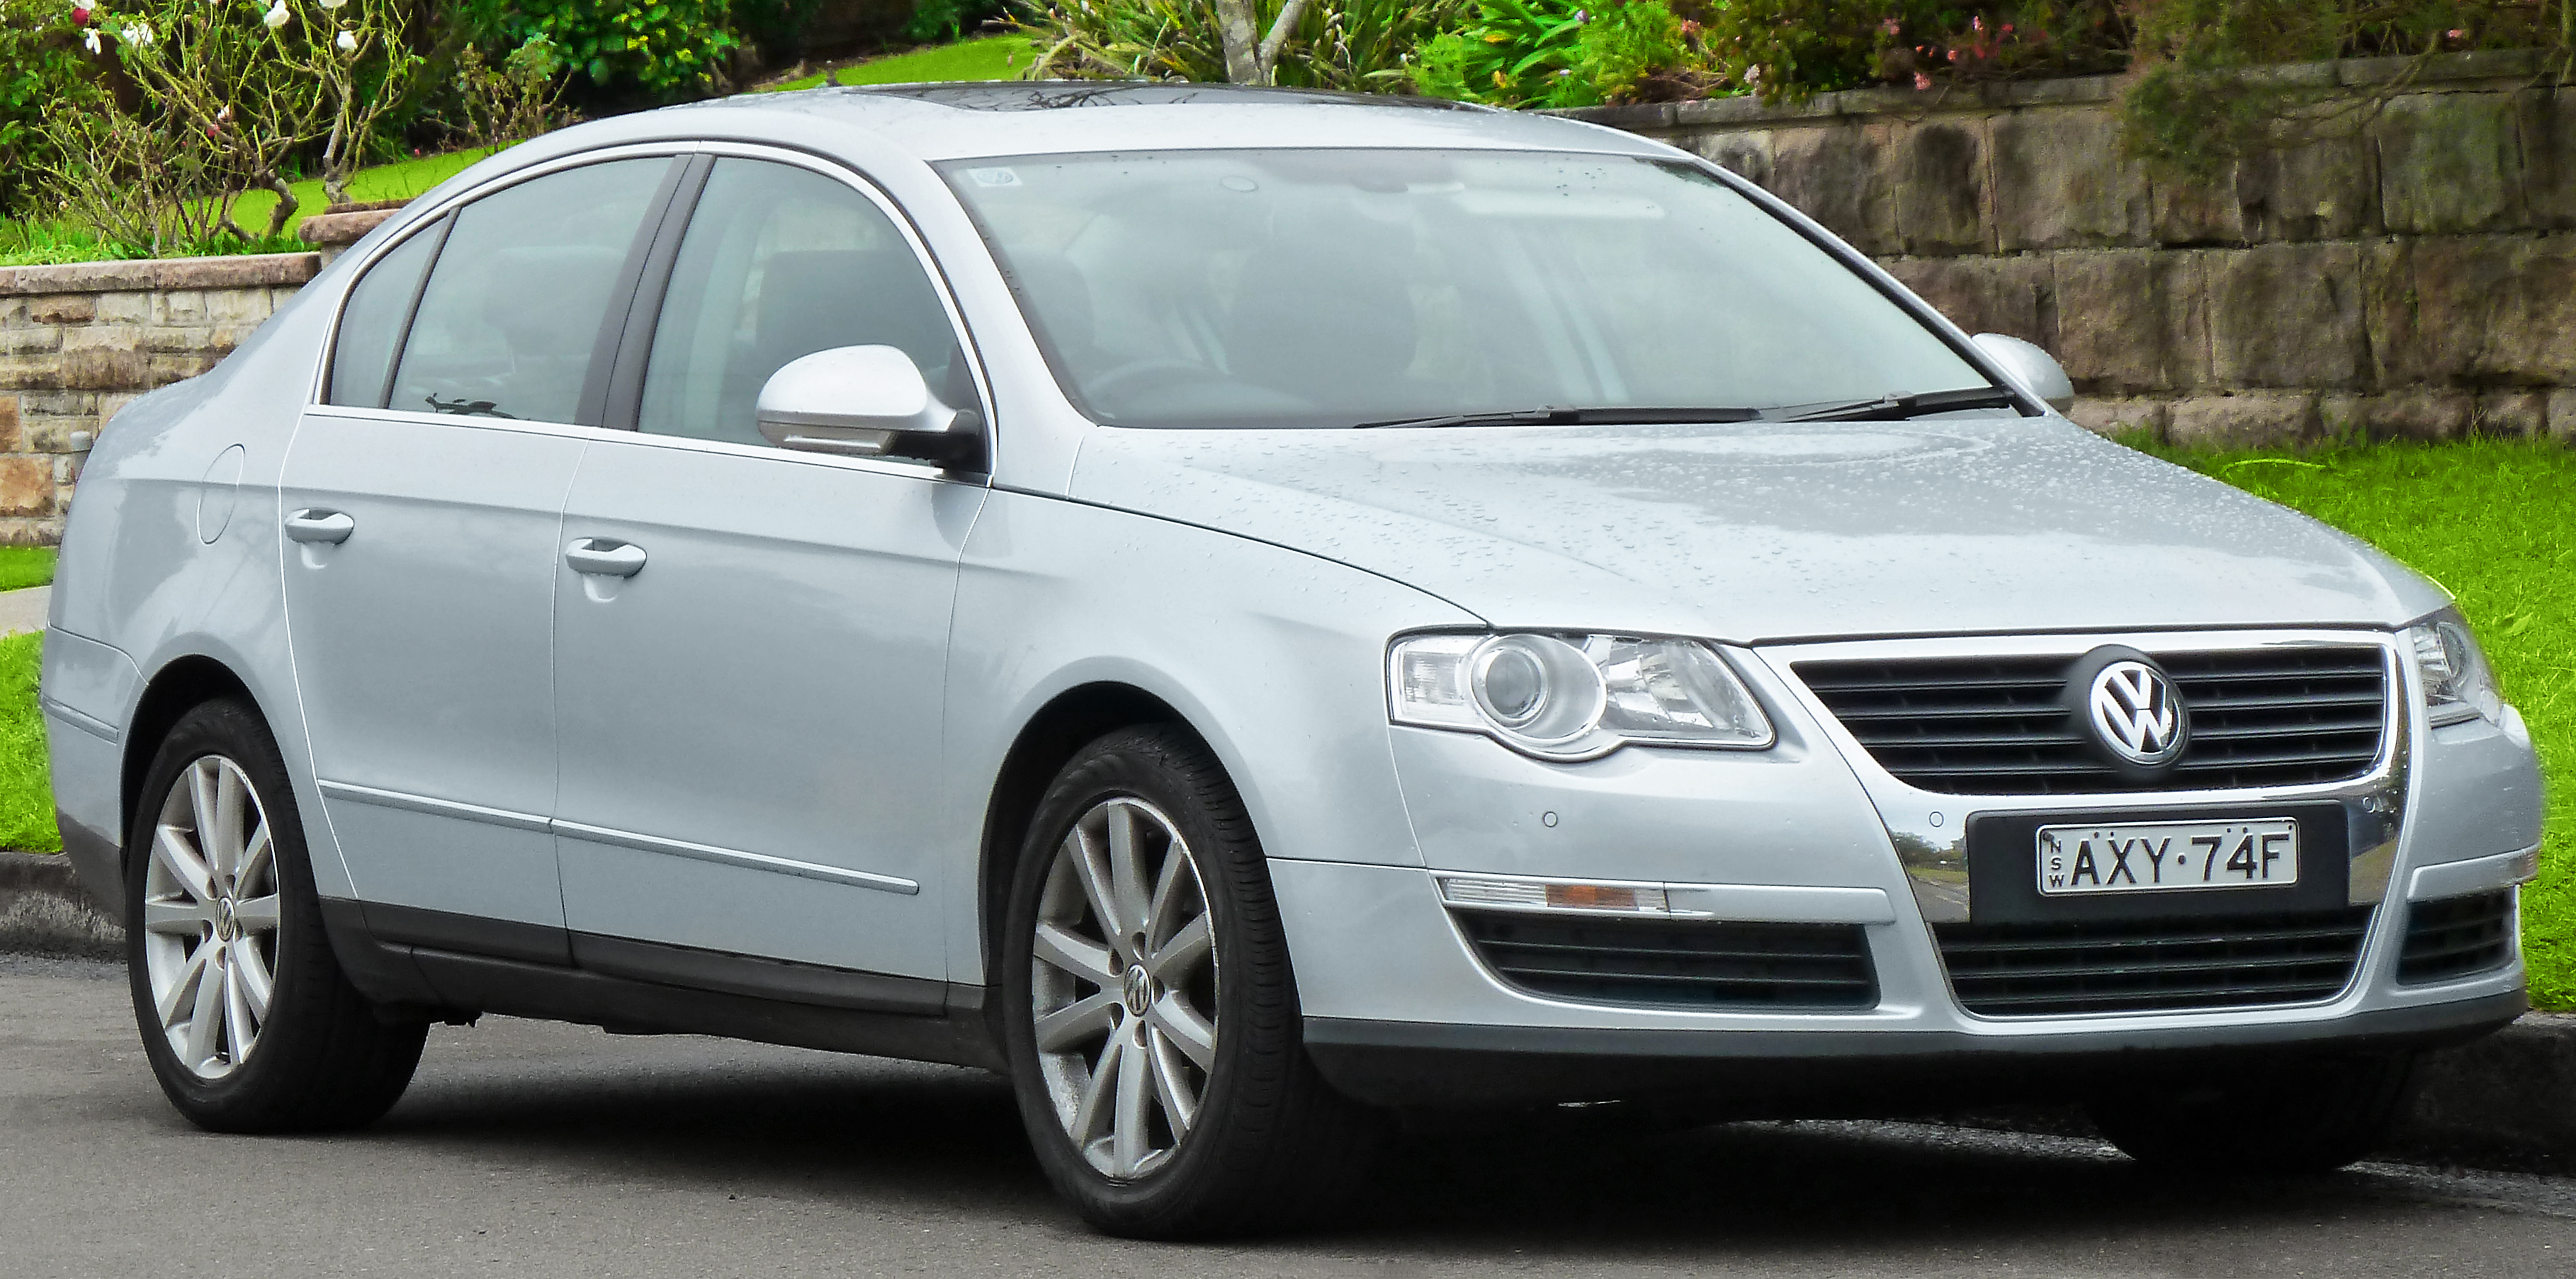 Description 2006-2010 Volkswagen Passat (3C) sedan (2011-07-17) 01.jpg